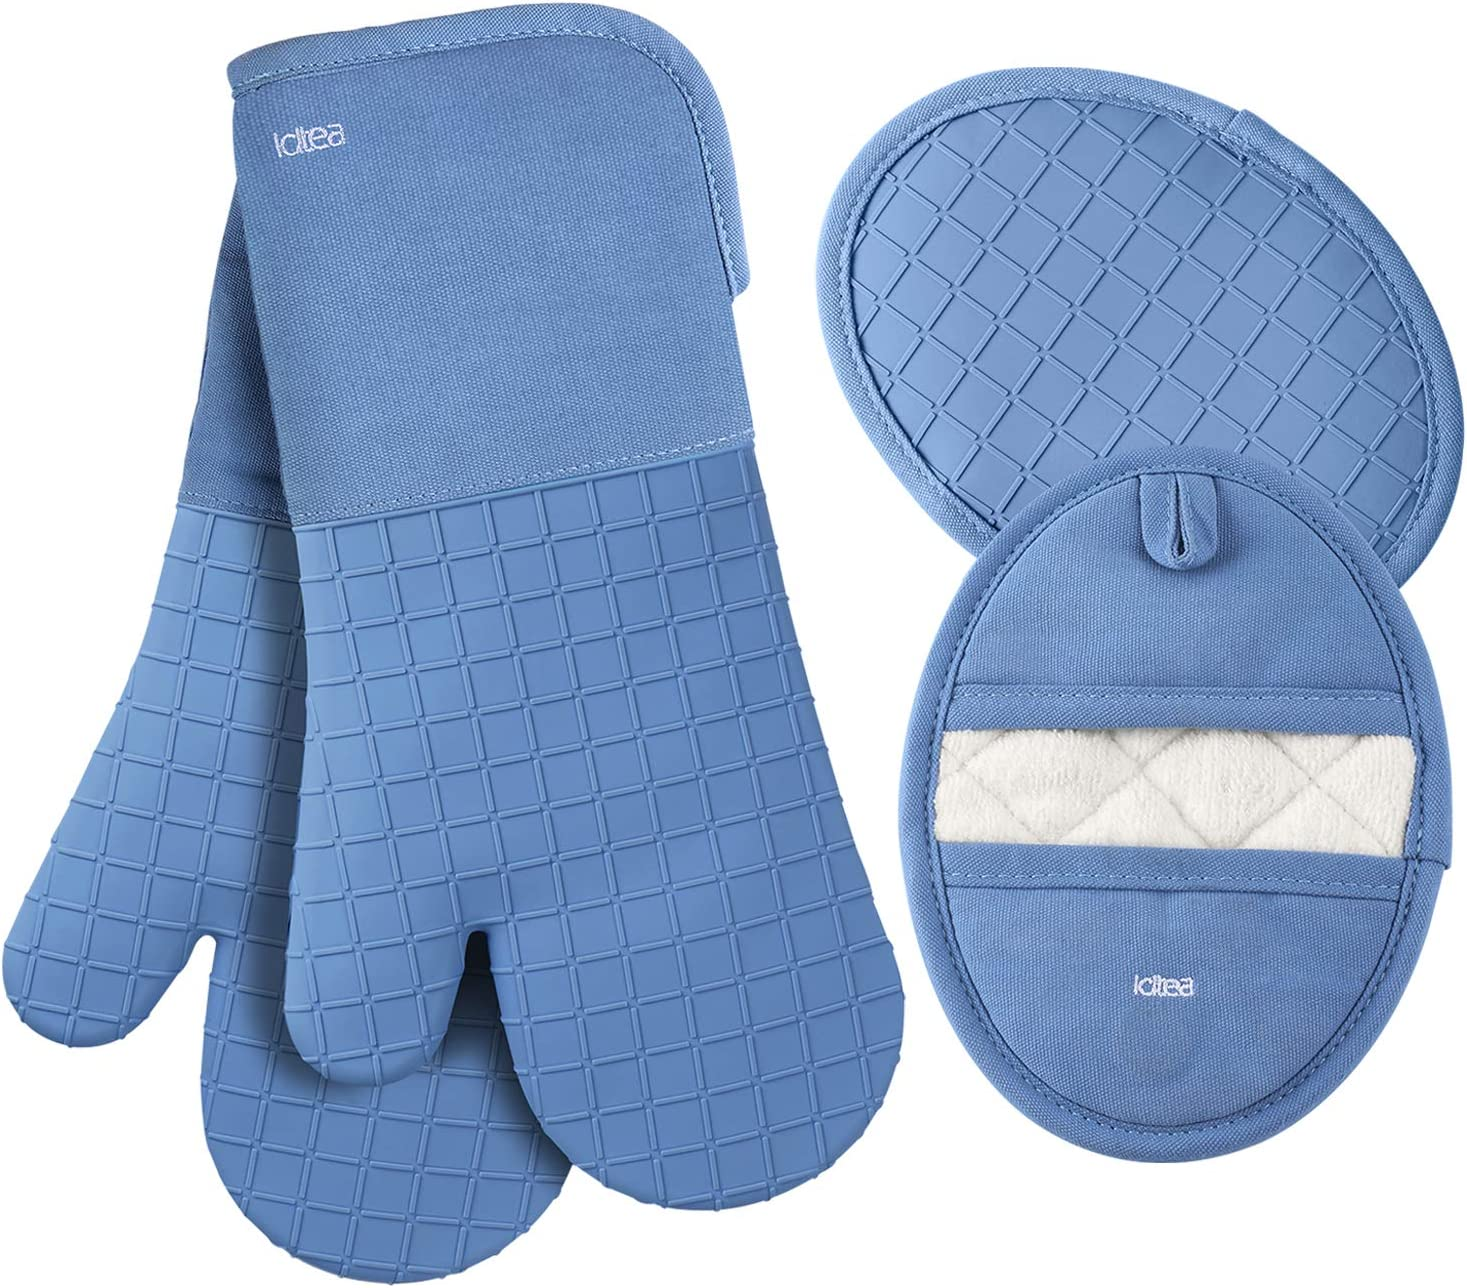 LDTEA Oven Mitts and Pot Holders Sets, 600°F Heat Resistant Platinum-Grade Silicone Oven Mitts, Soft Cotton Terry Oven Mitt, Anti-Slip Oven Gloves and Pot Holders for Kitchen, Baking, BBQ, 4 Pieces